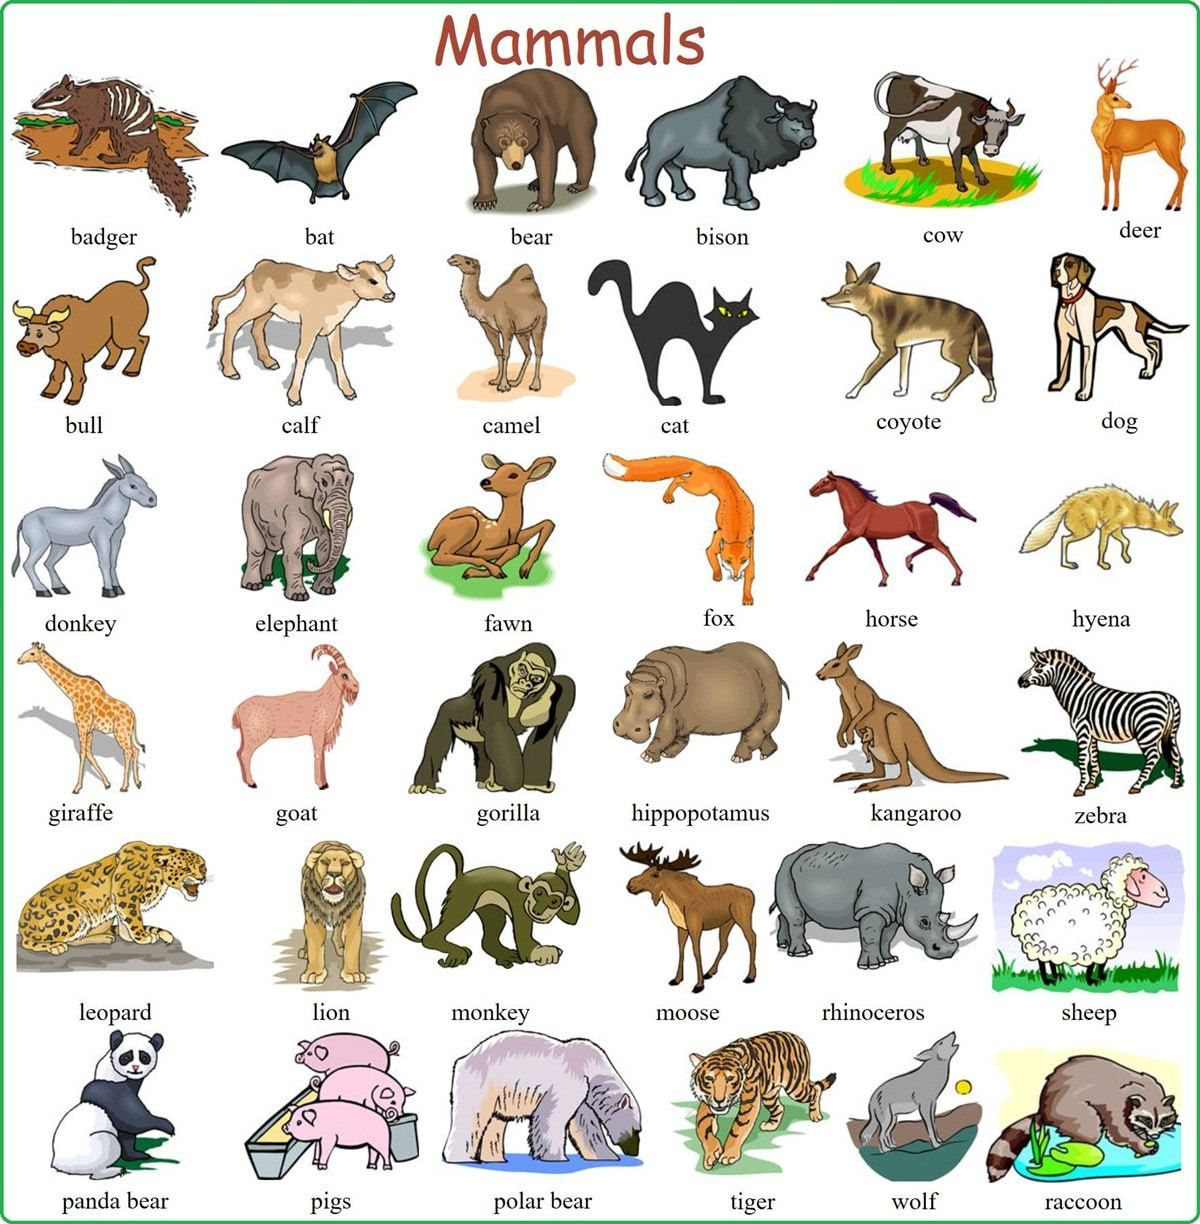 Learn English Vocabulary through Pictures 100+ Animal